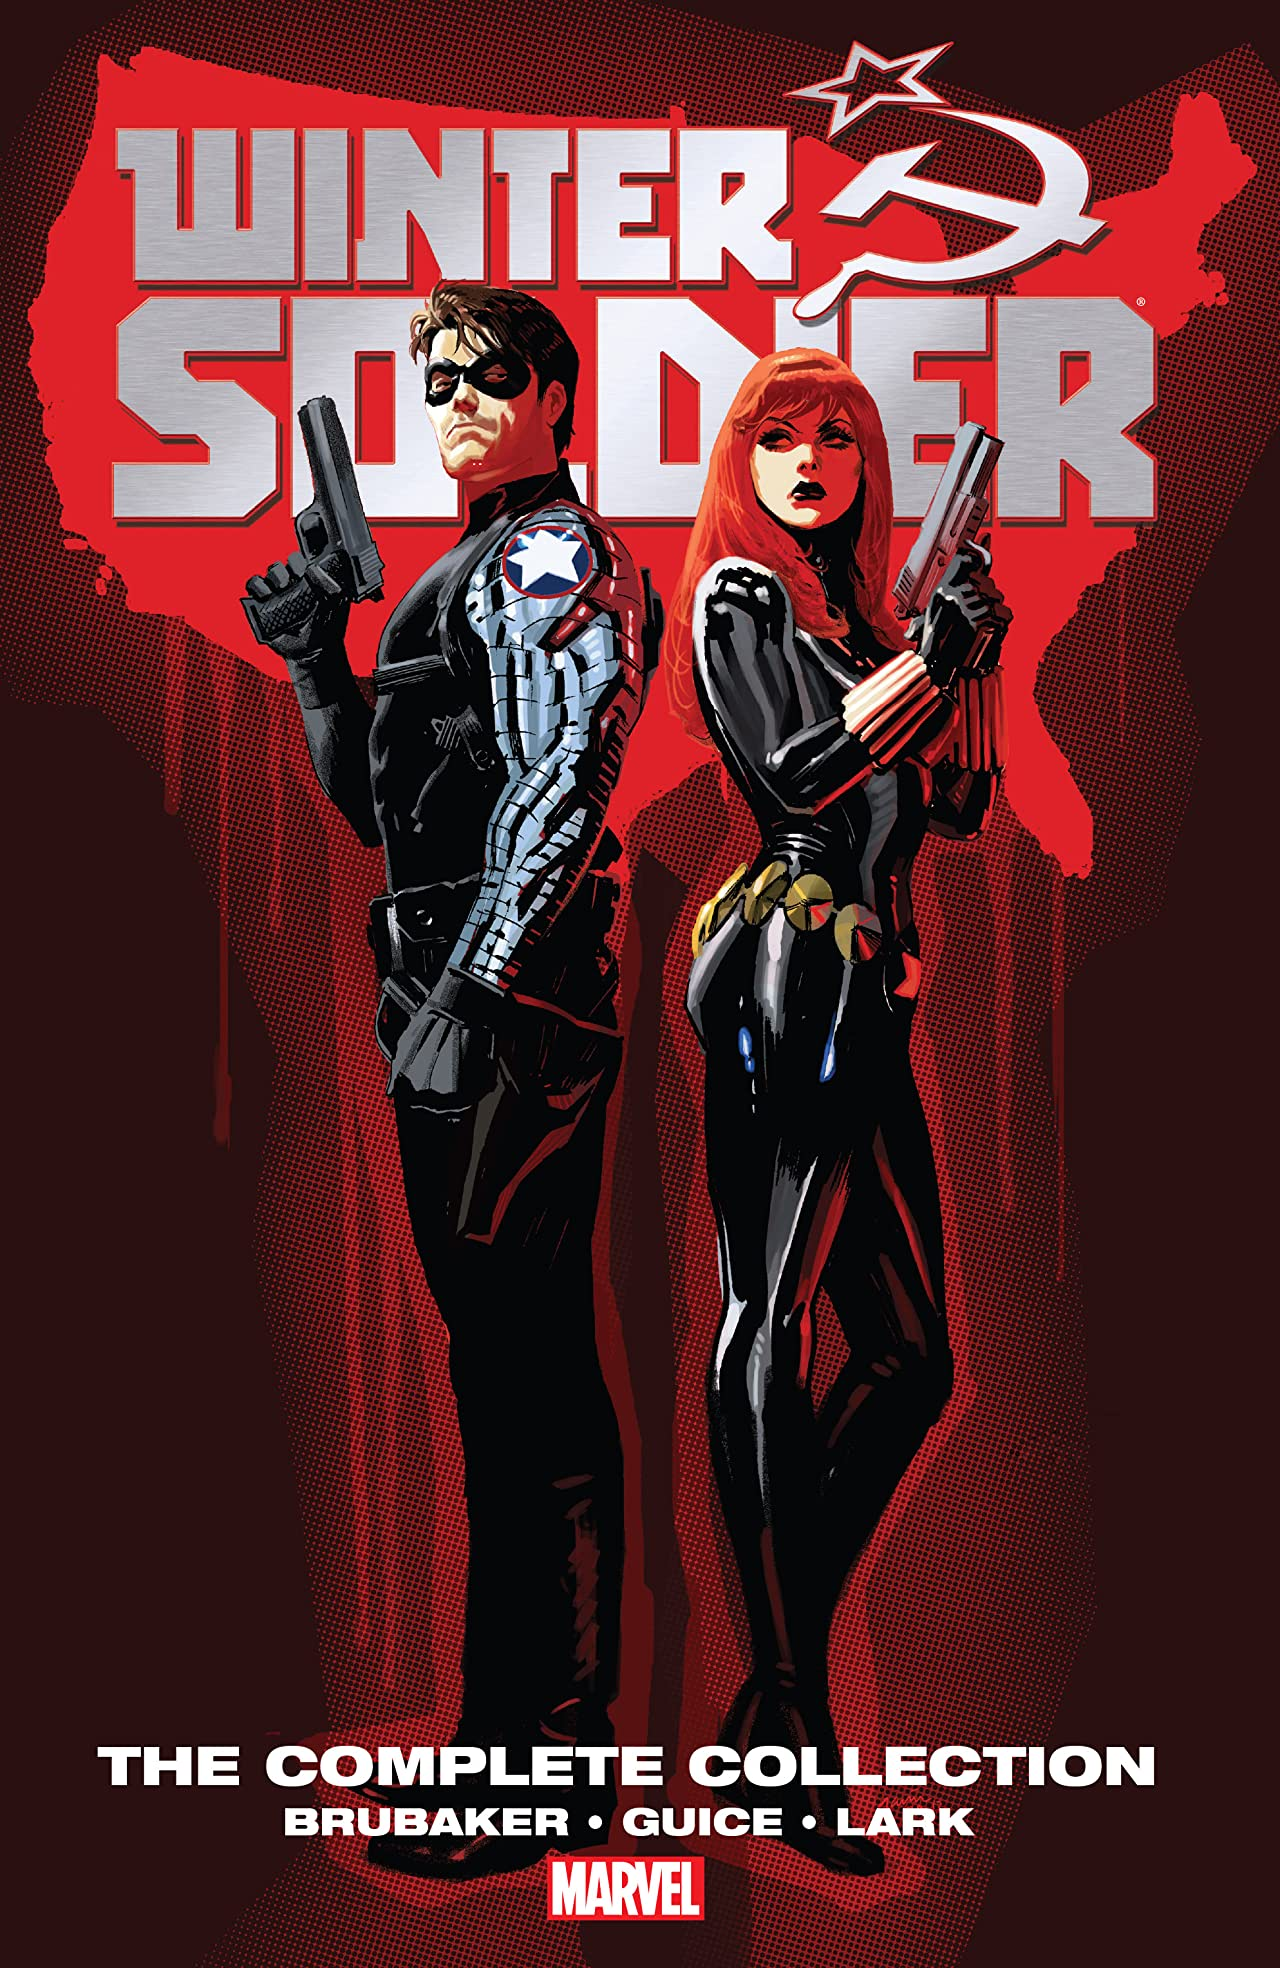 Winter Soldier By Ed Brubaker: The Complete Collection (Trade Paperback)